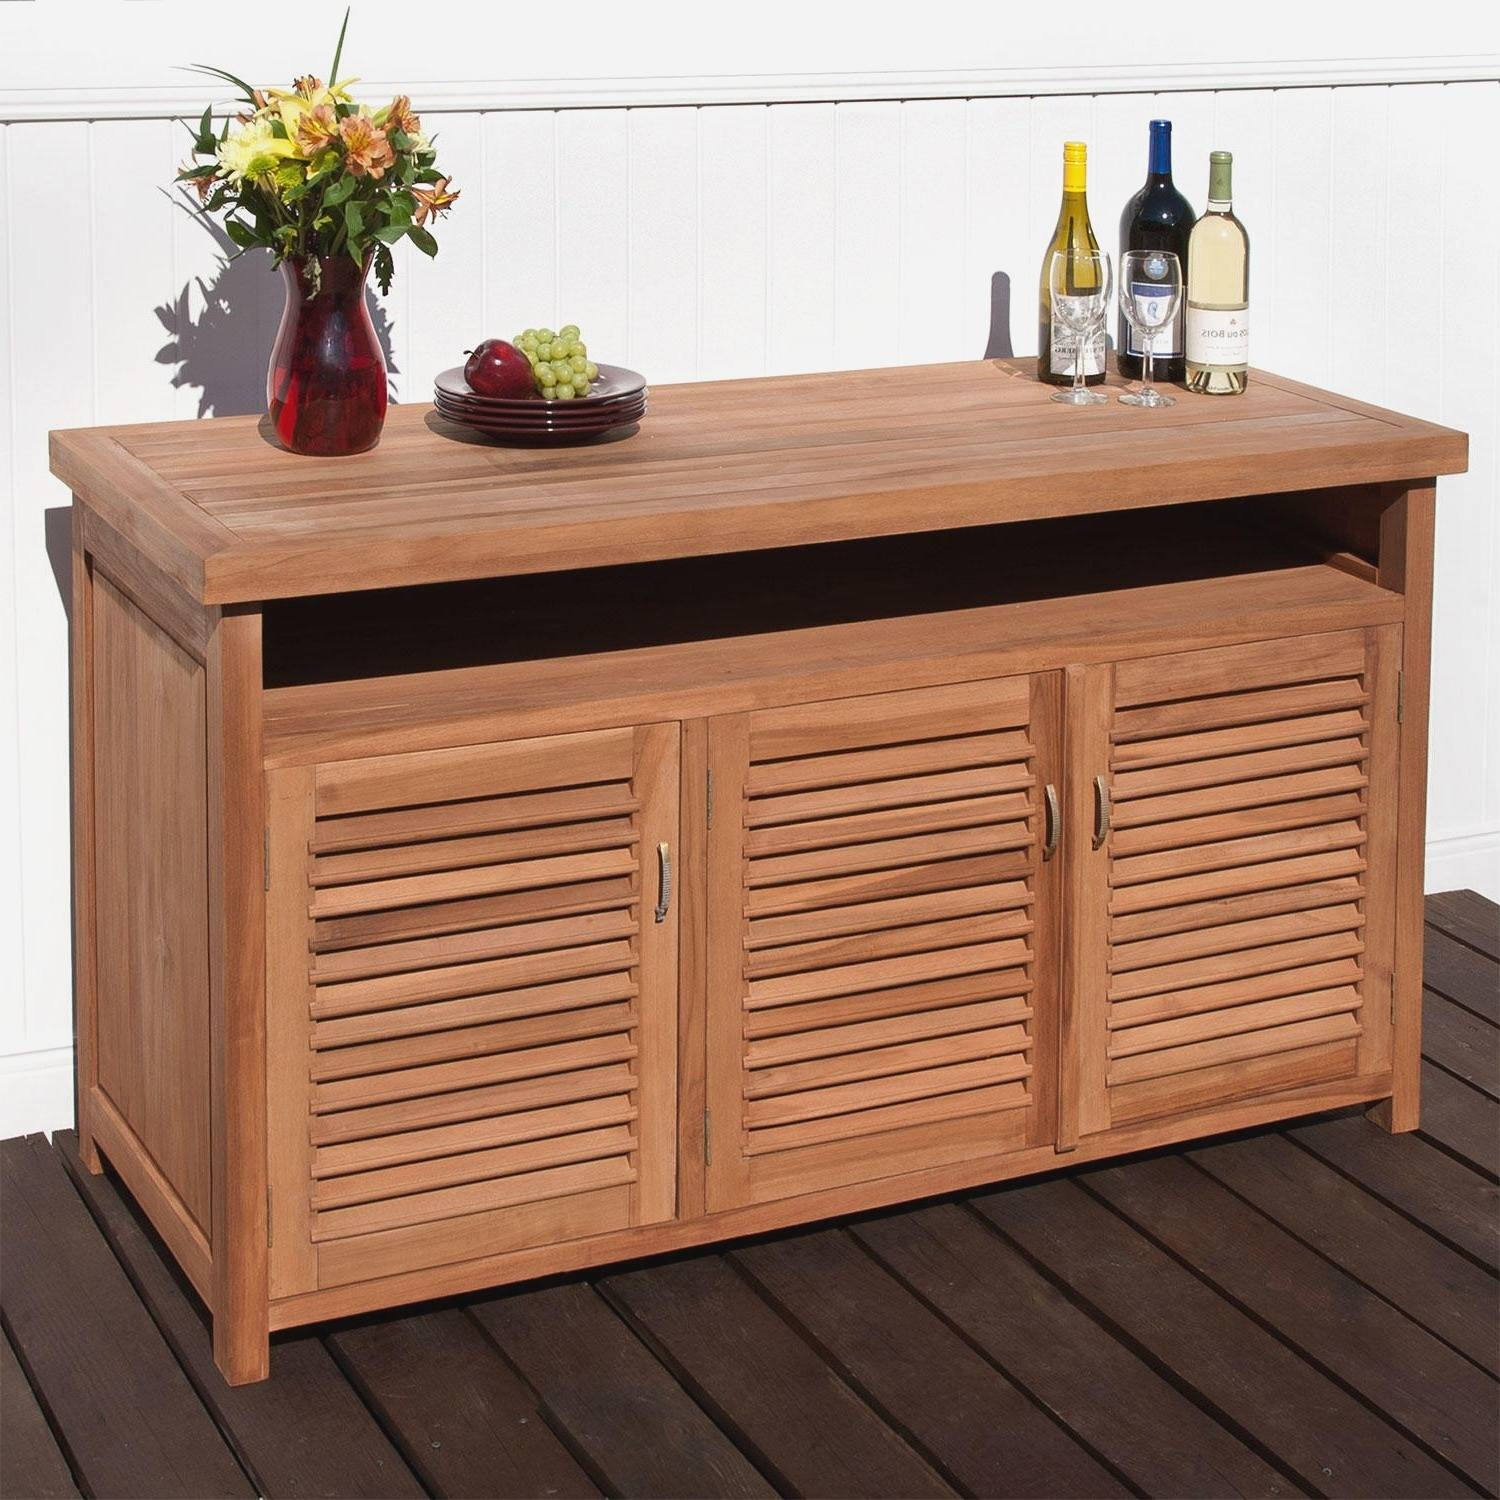 Outdoor Sideboards And Buffets: Outdoor Sideboards And Buffets Regarding Outdoor Sideboards And Buffets (View 6 of 15)